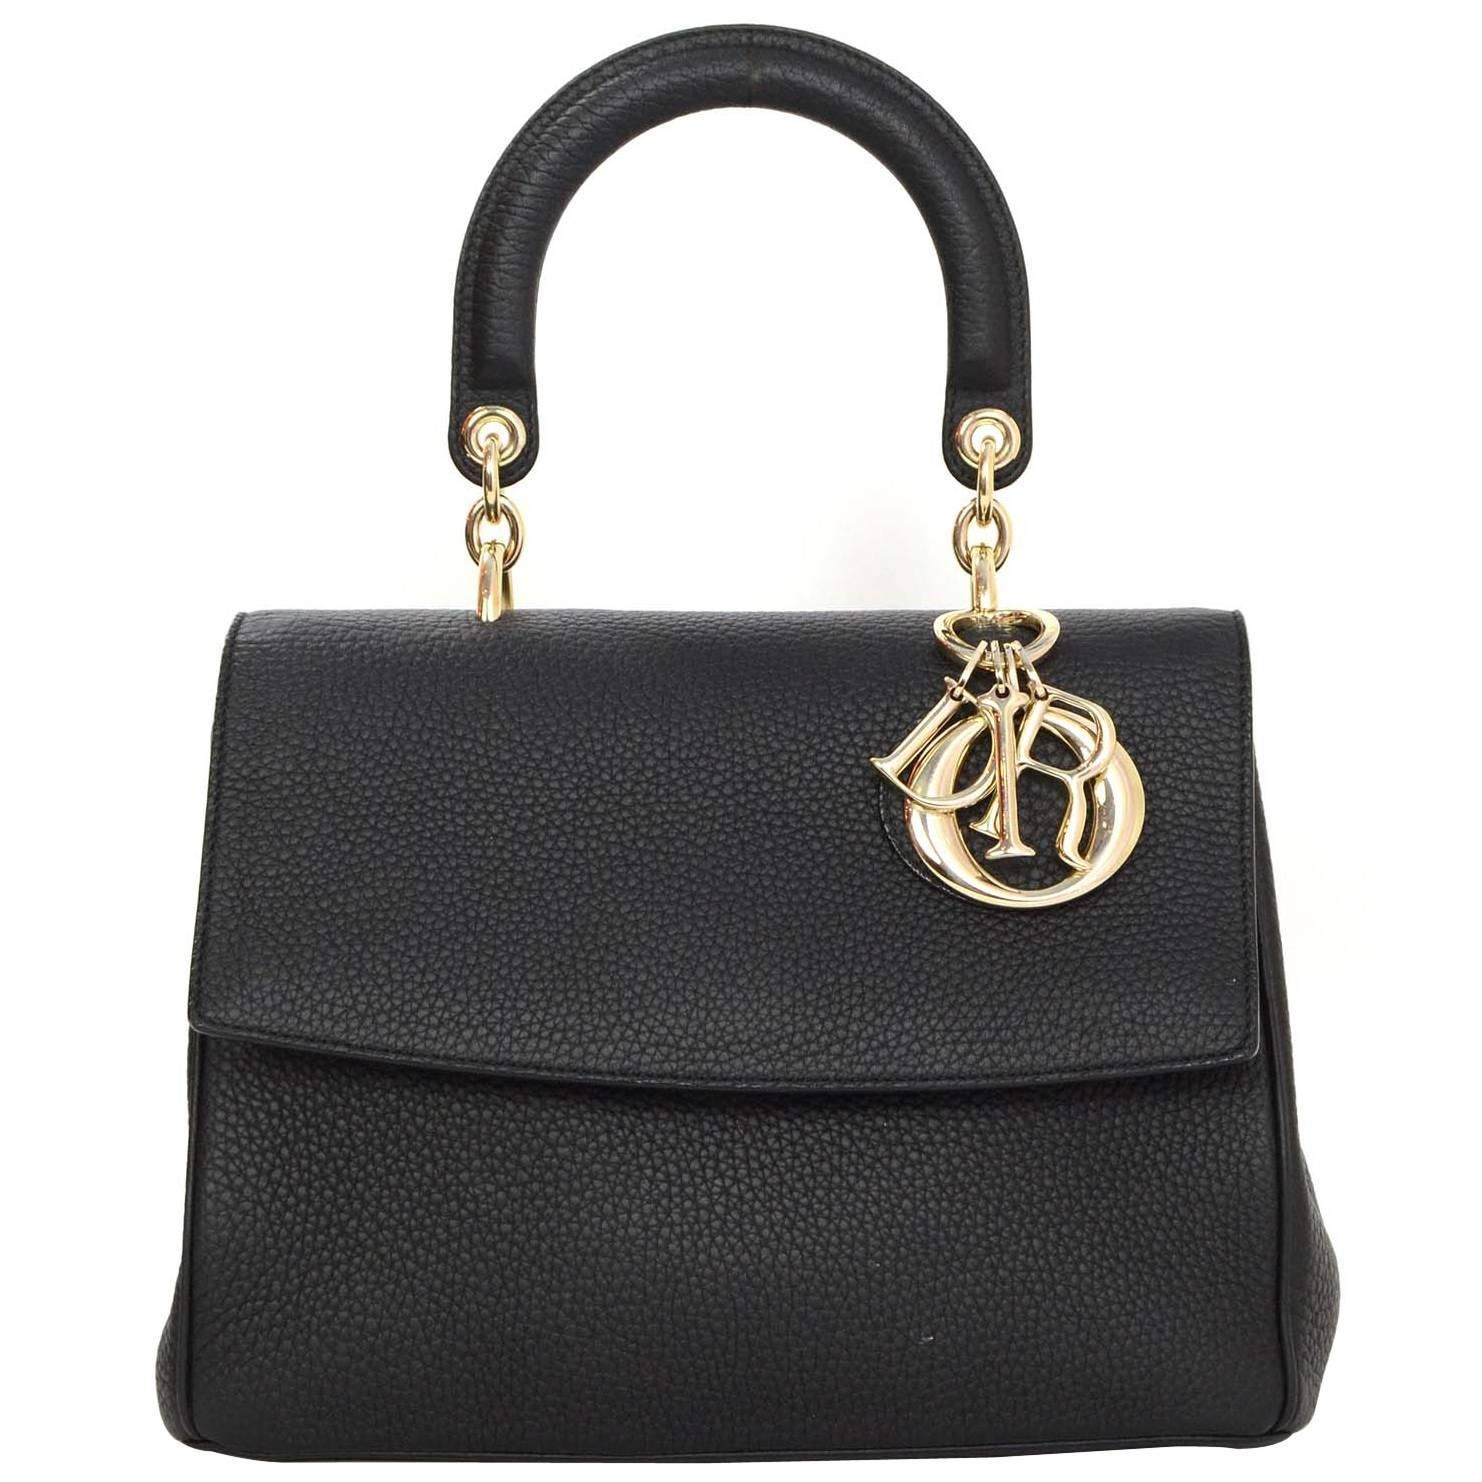 Christian Dior Black Leather Small Be Dior Bag GHW rt.  4 f2e34dcd7564b